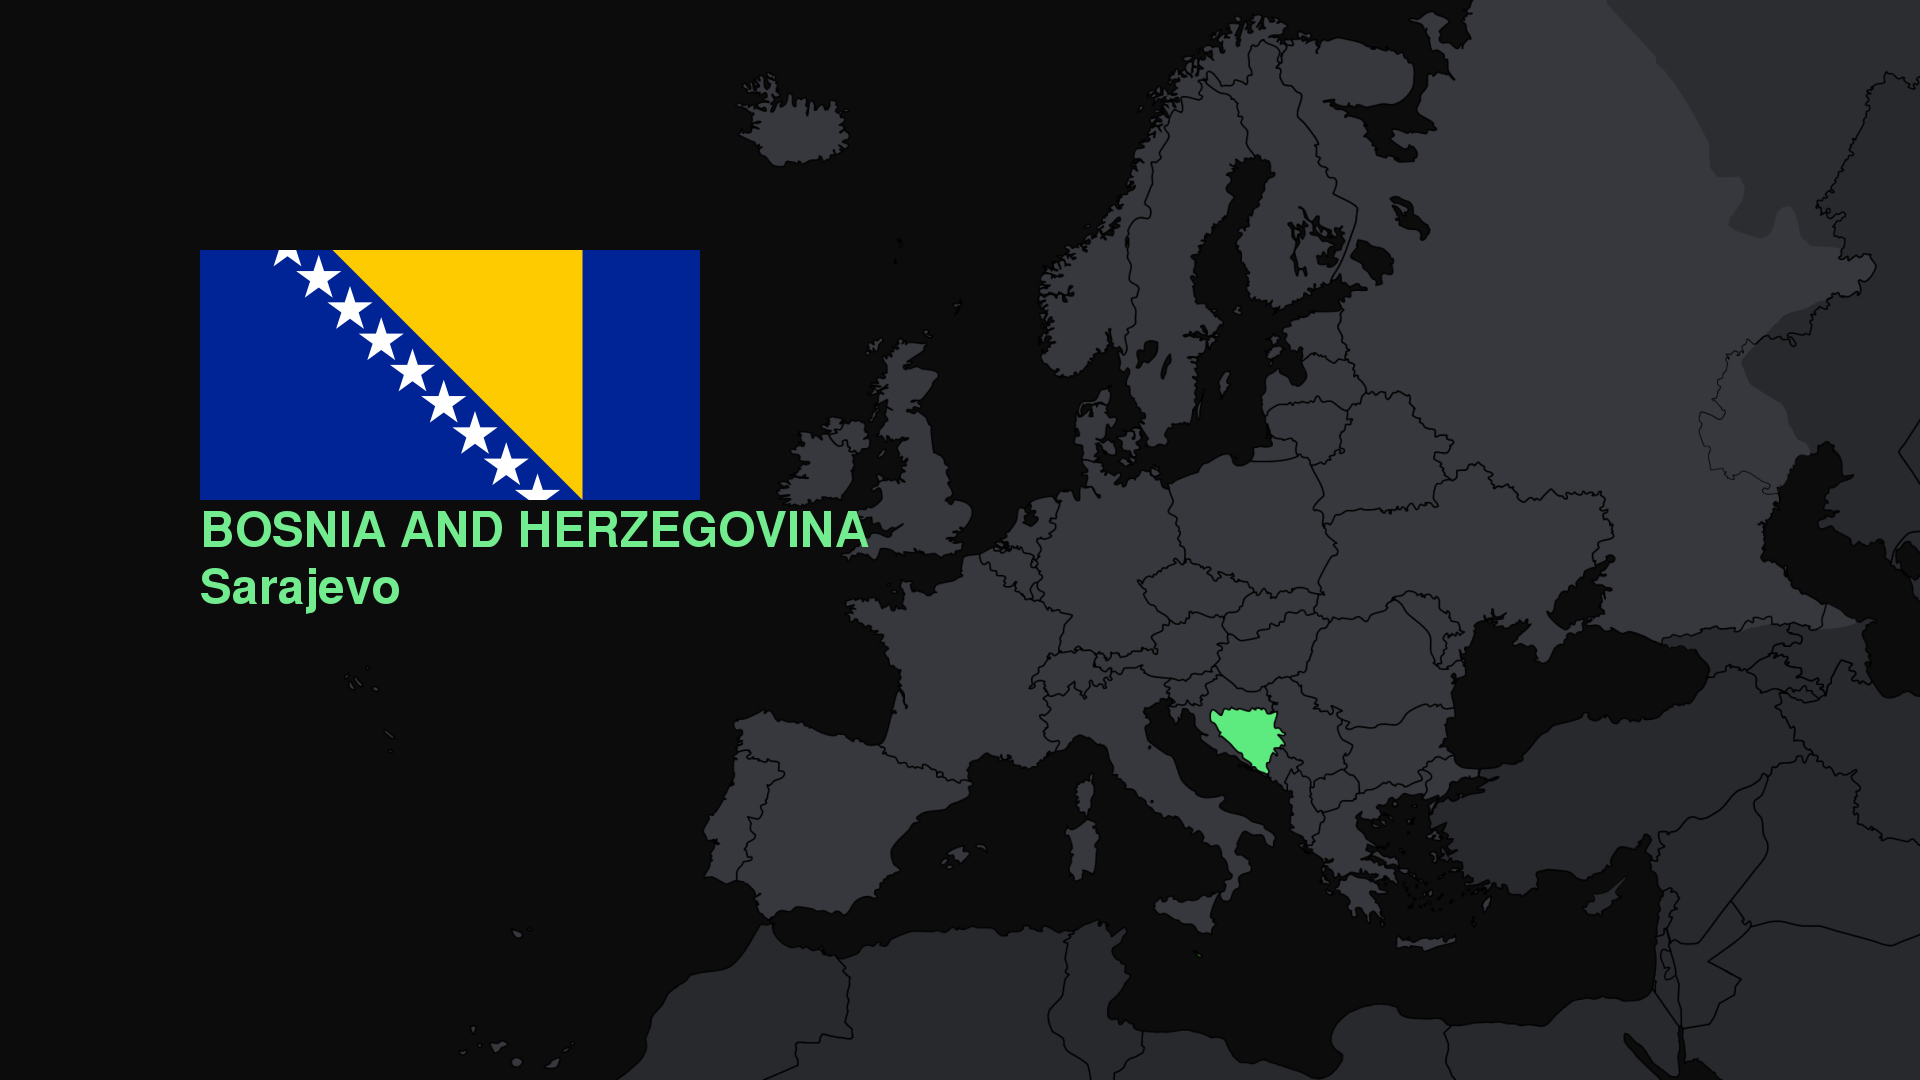 Flags Europe Maps knowledge HD Wallpaper